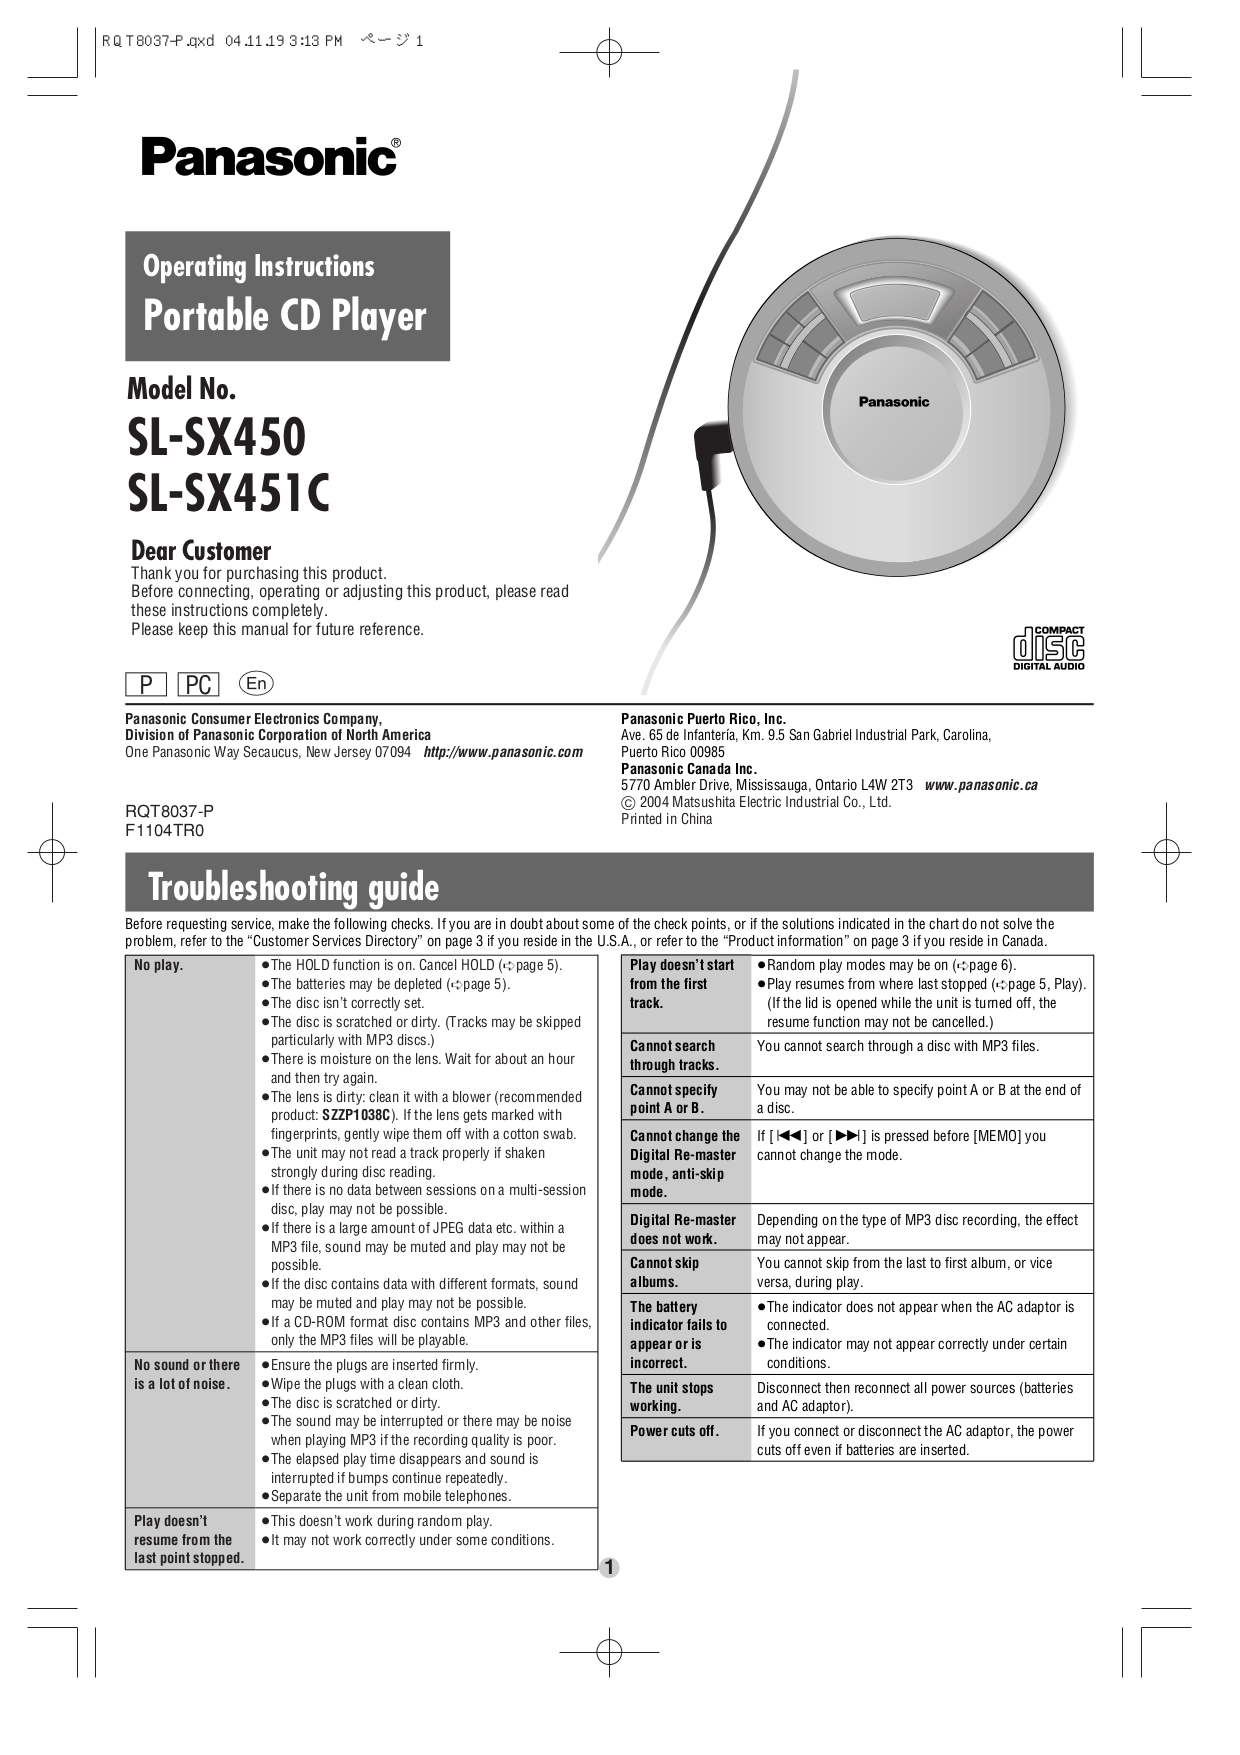 PDF manual for Panasonic CD Player SL-SX451C